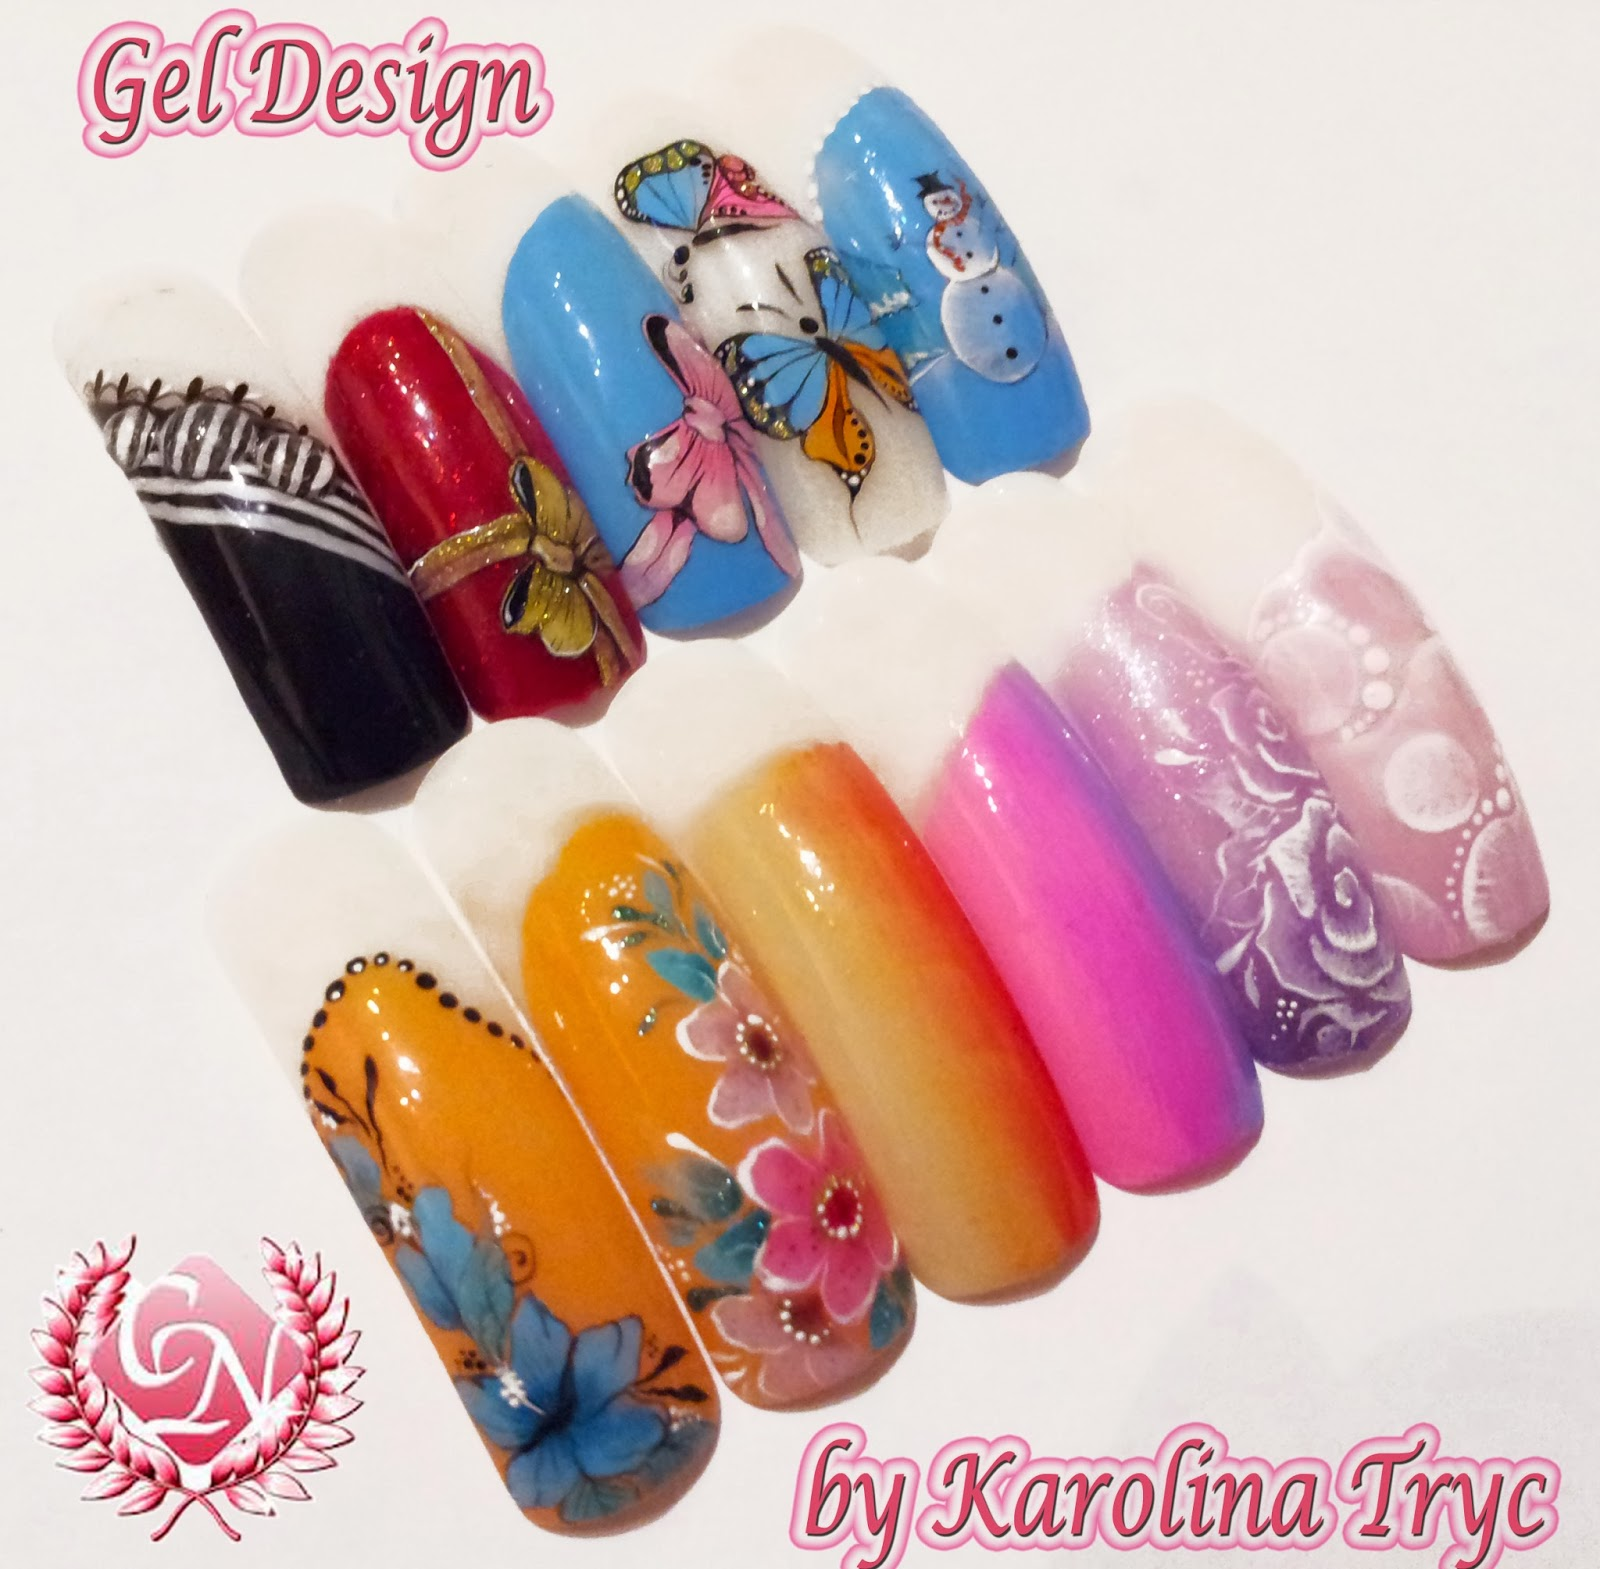 Gel Design Work With Crystal Nails Academy By Karolina Tryc